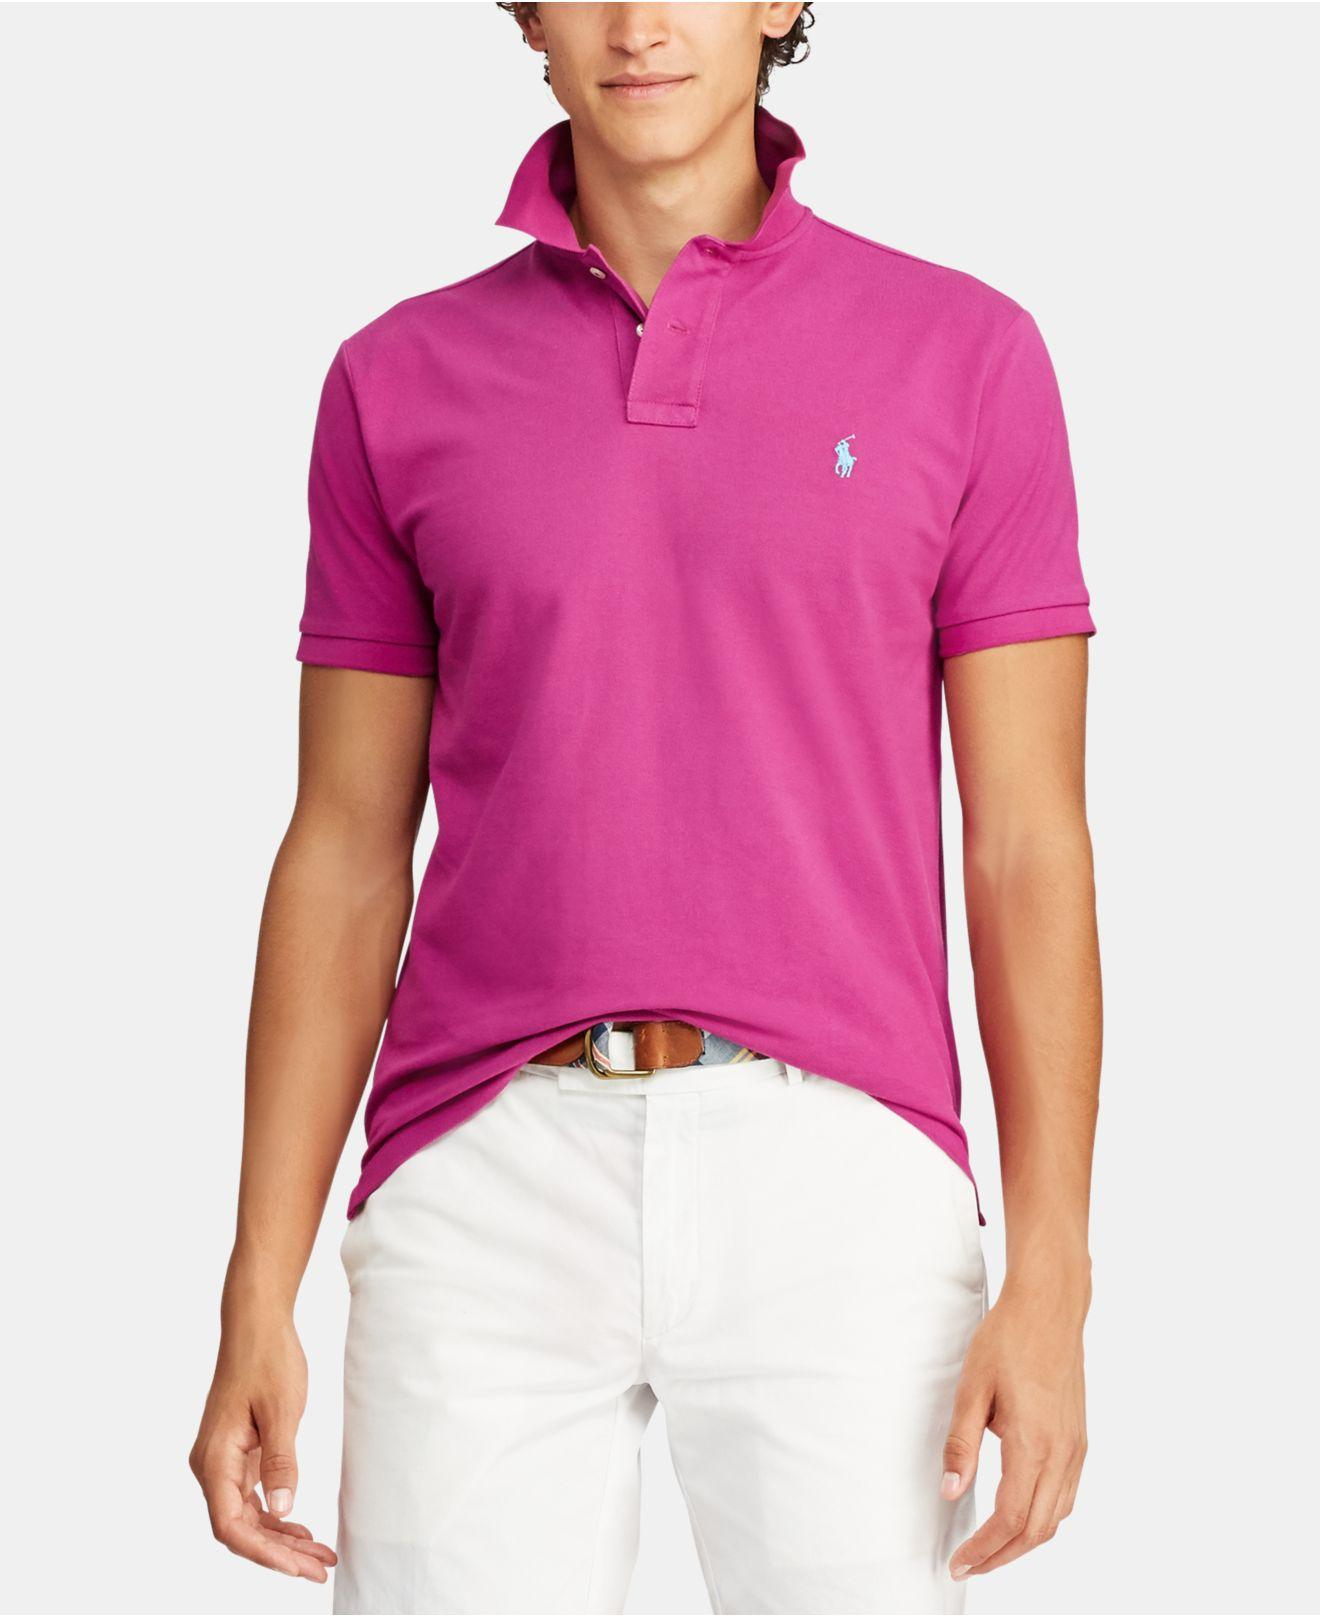 94c9f86dc3ab31 Lyst - Polo Ralph Lauren Big & Tall Classic Fit Cotton Mesh Polo in ...